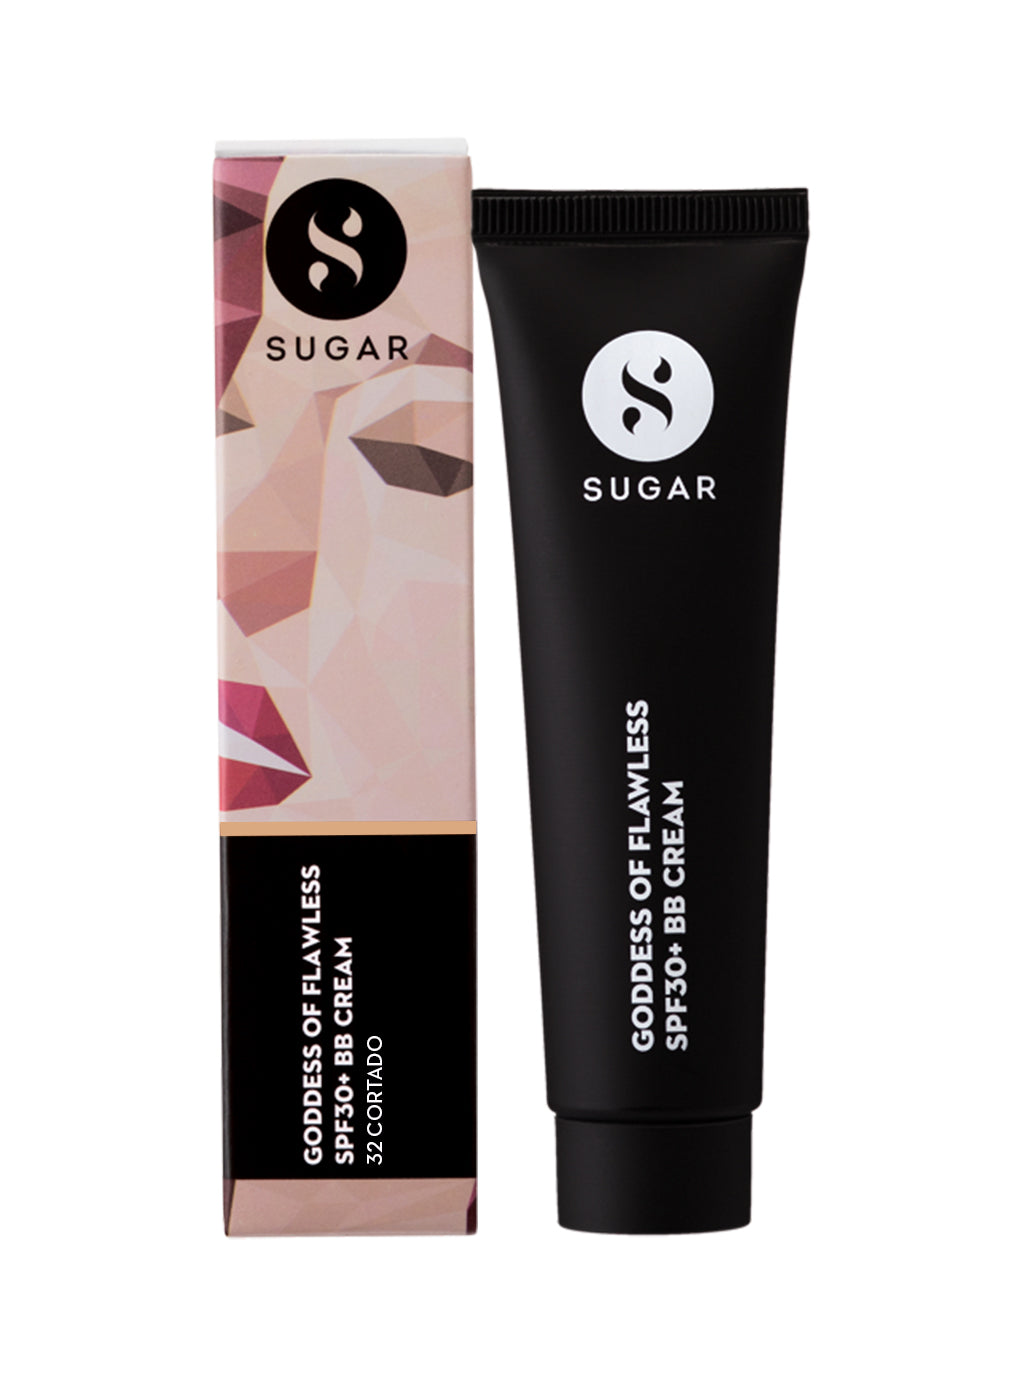 SUGAR Goddess Of Flawless SPF30+ BB Cream - 32 Cortado (Medium)